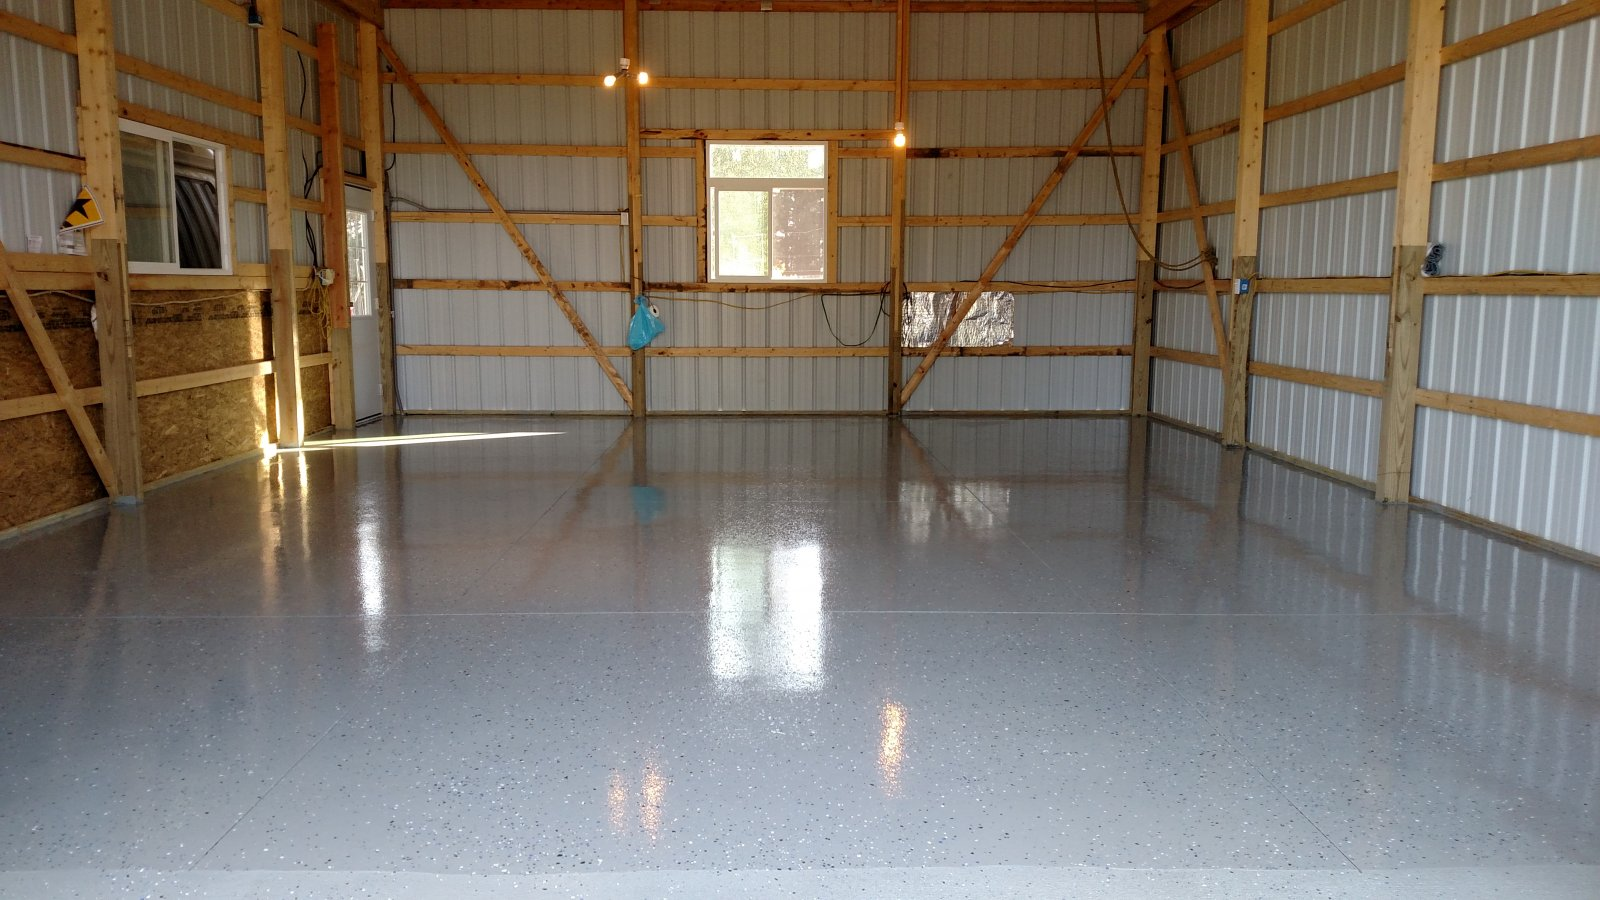 Click image for larger version  Name:Eddie's new place.jpg Views:76 Size:249.3 KB ID:327668